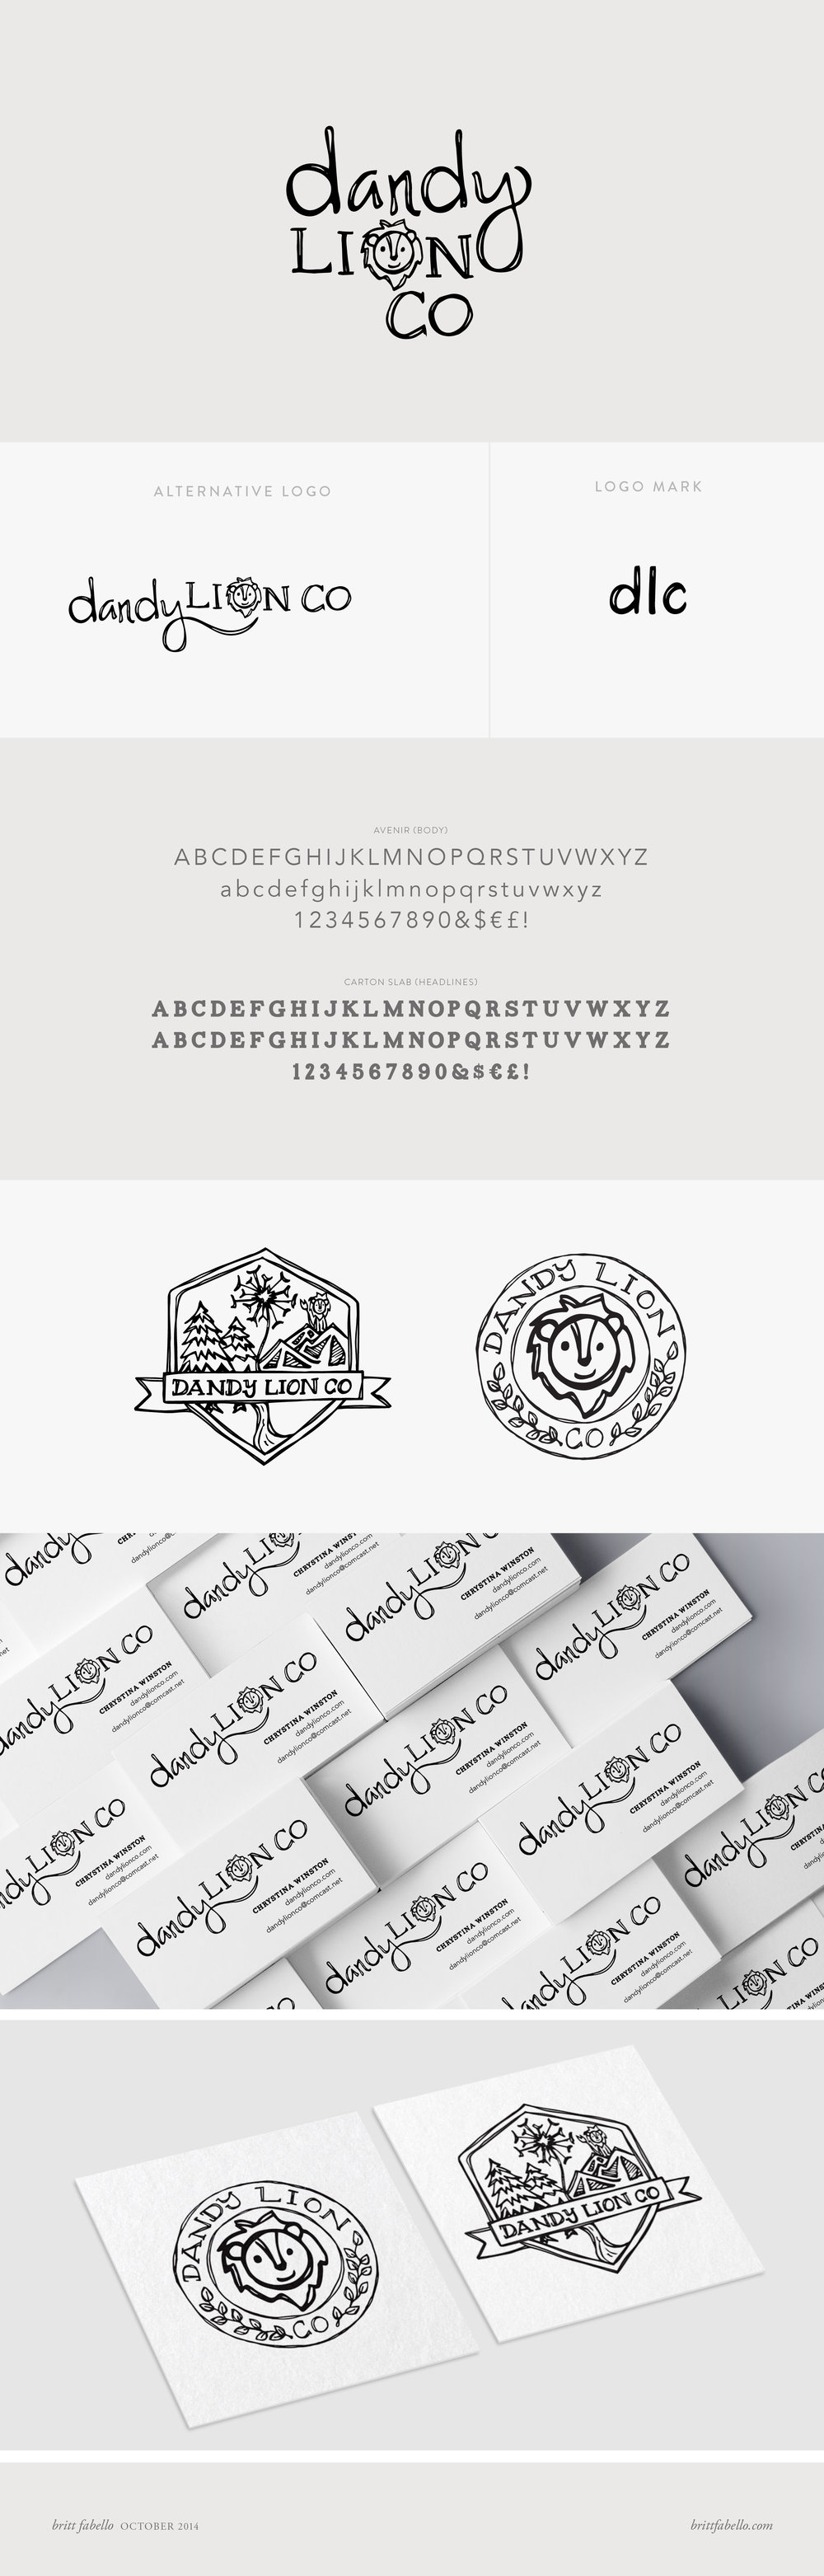 Dandy Lion Co Logo & Branding by Britt Fabello